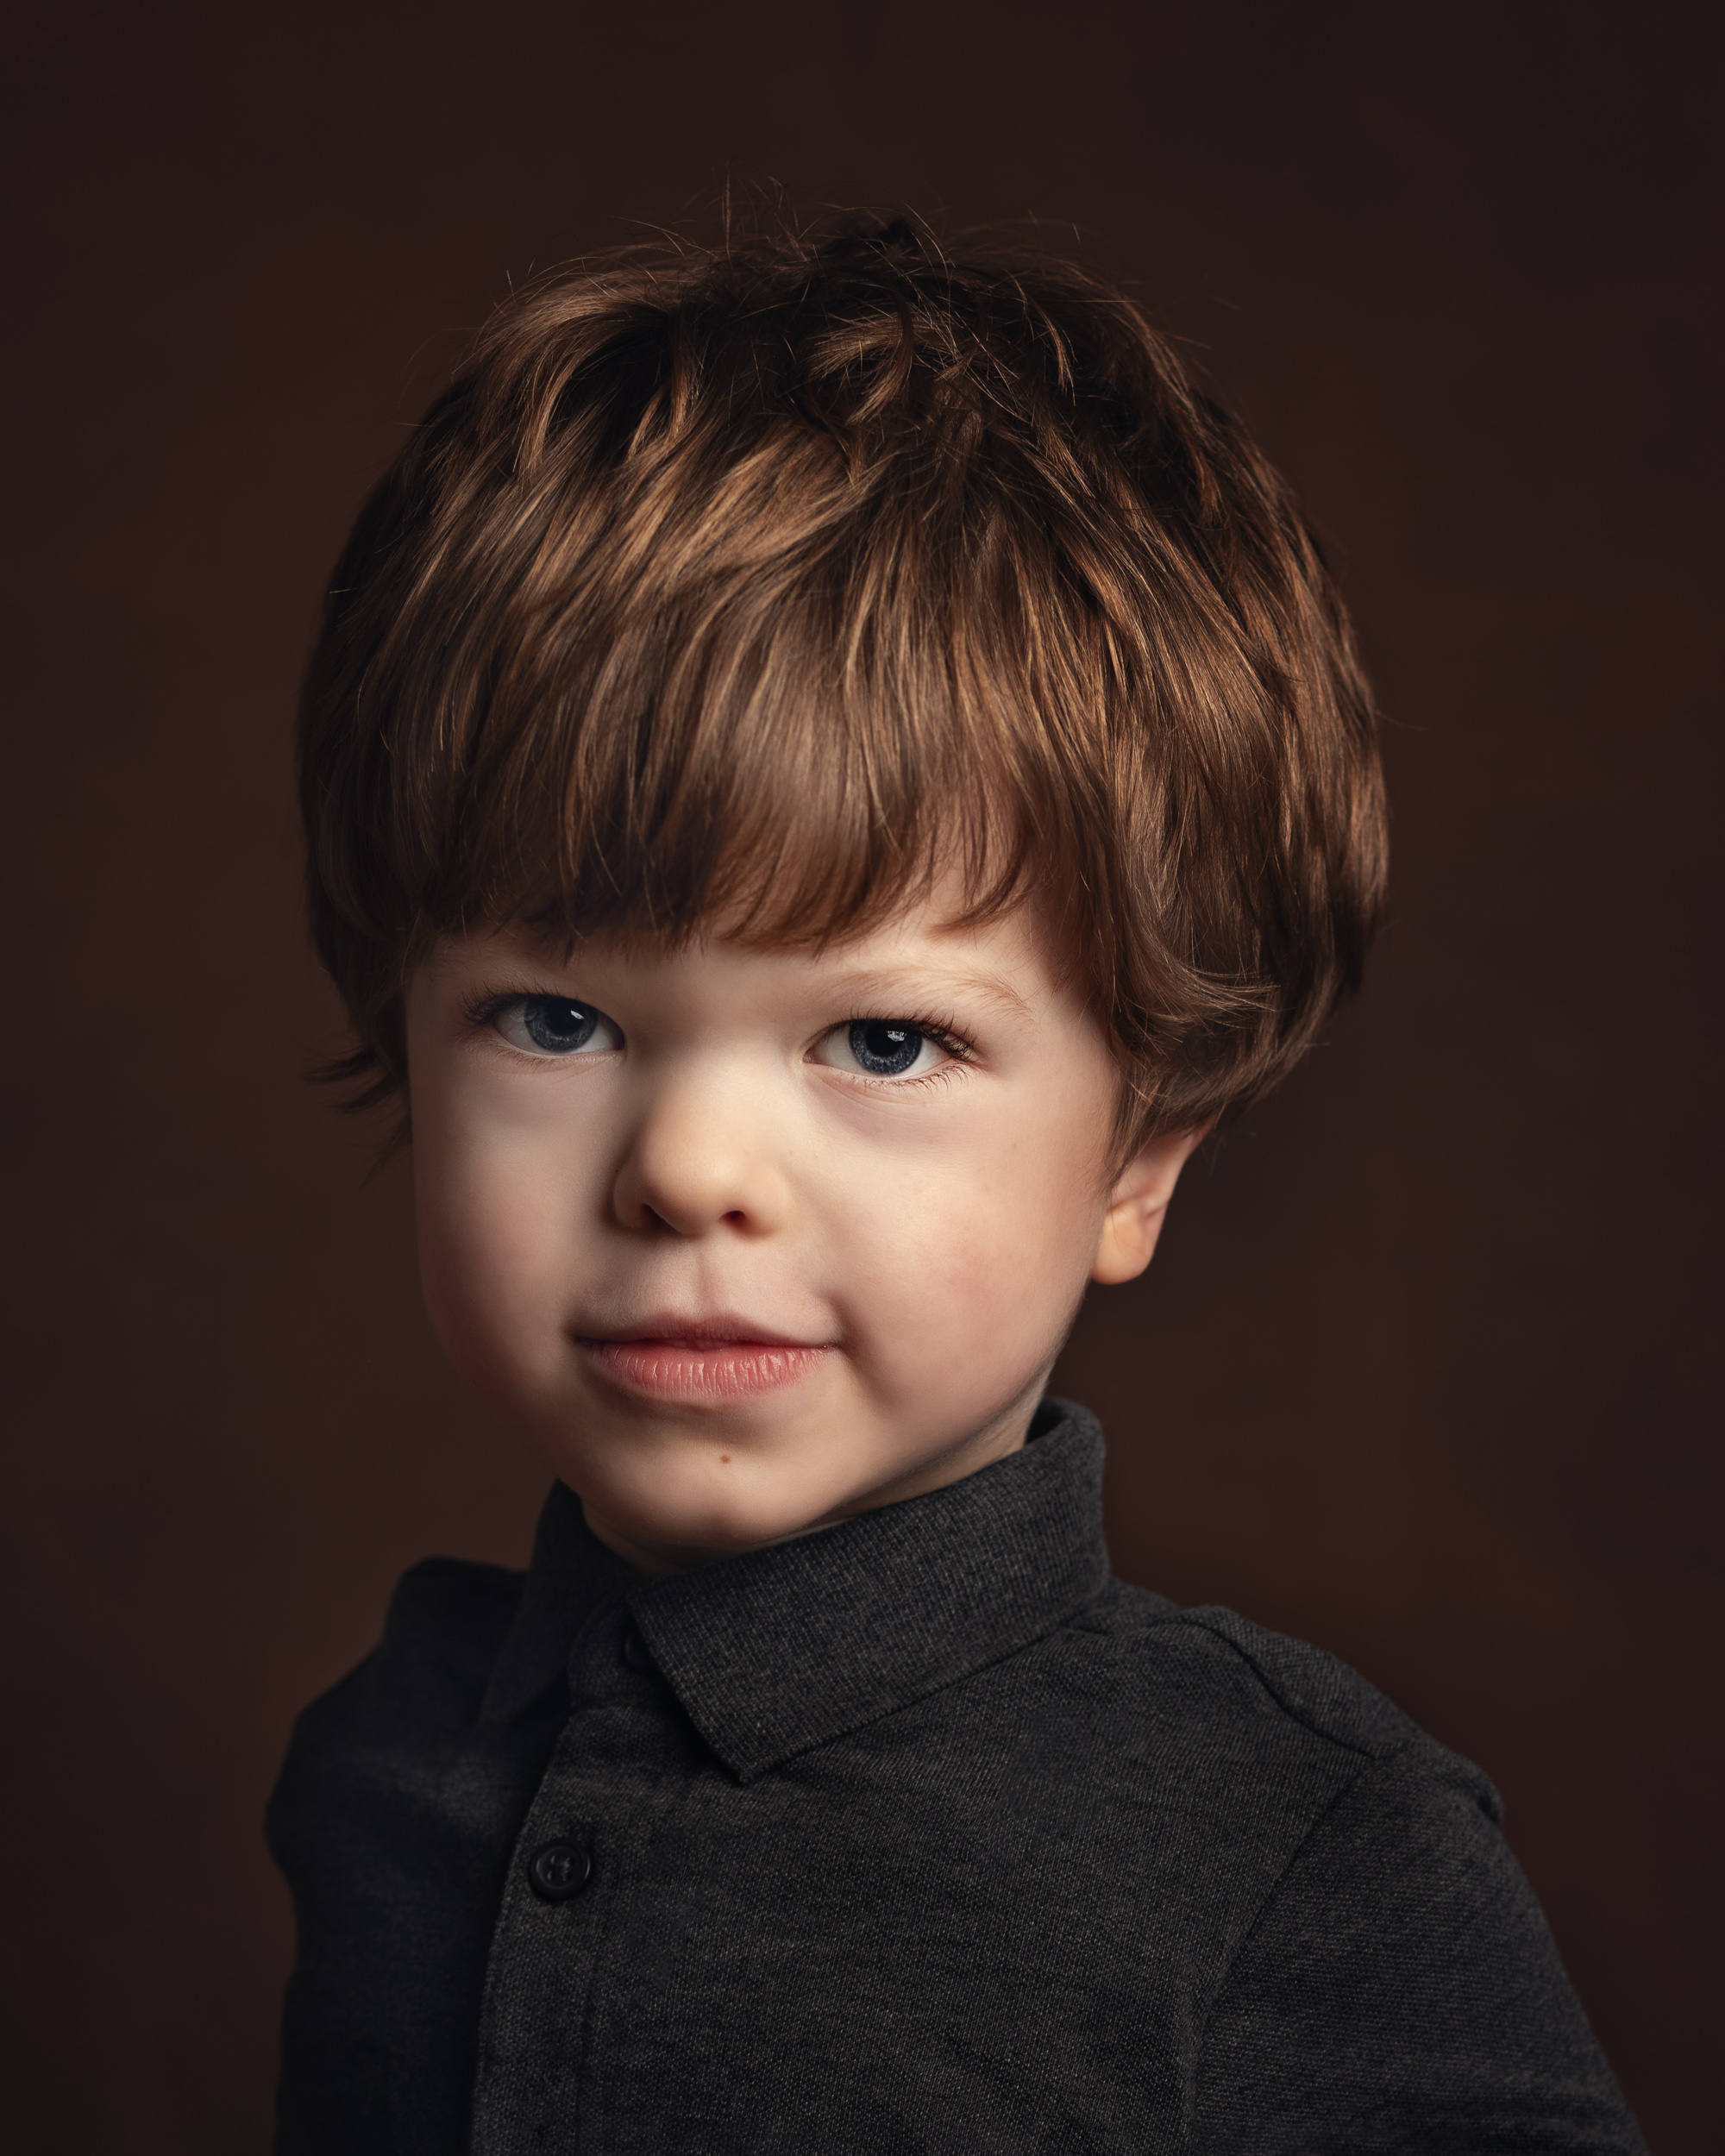 Rufus, who has achondroplasia, with a serious face on during his portrait session in Cheshire